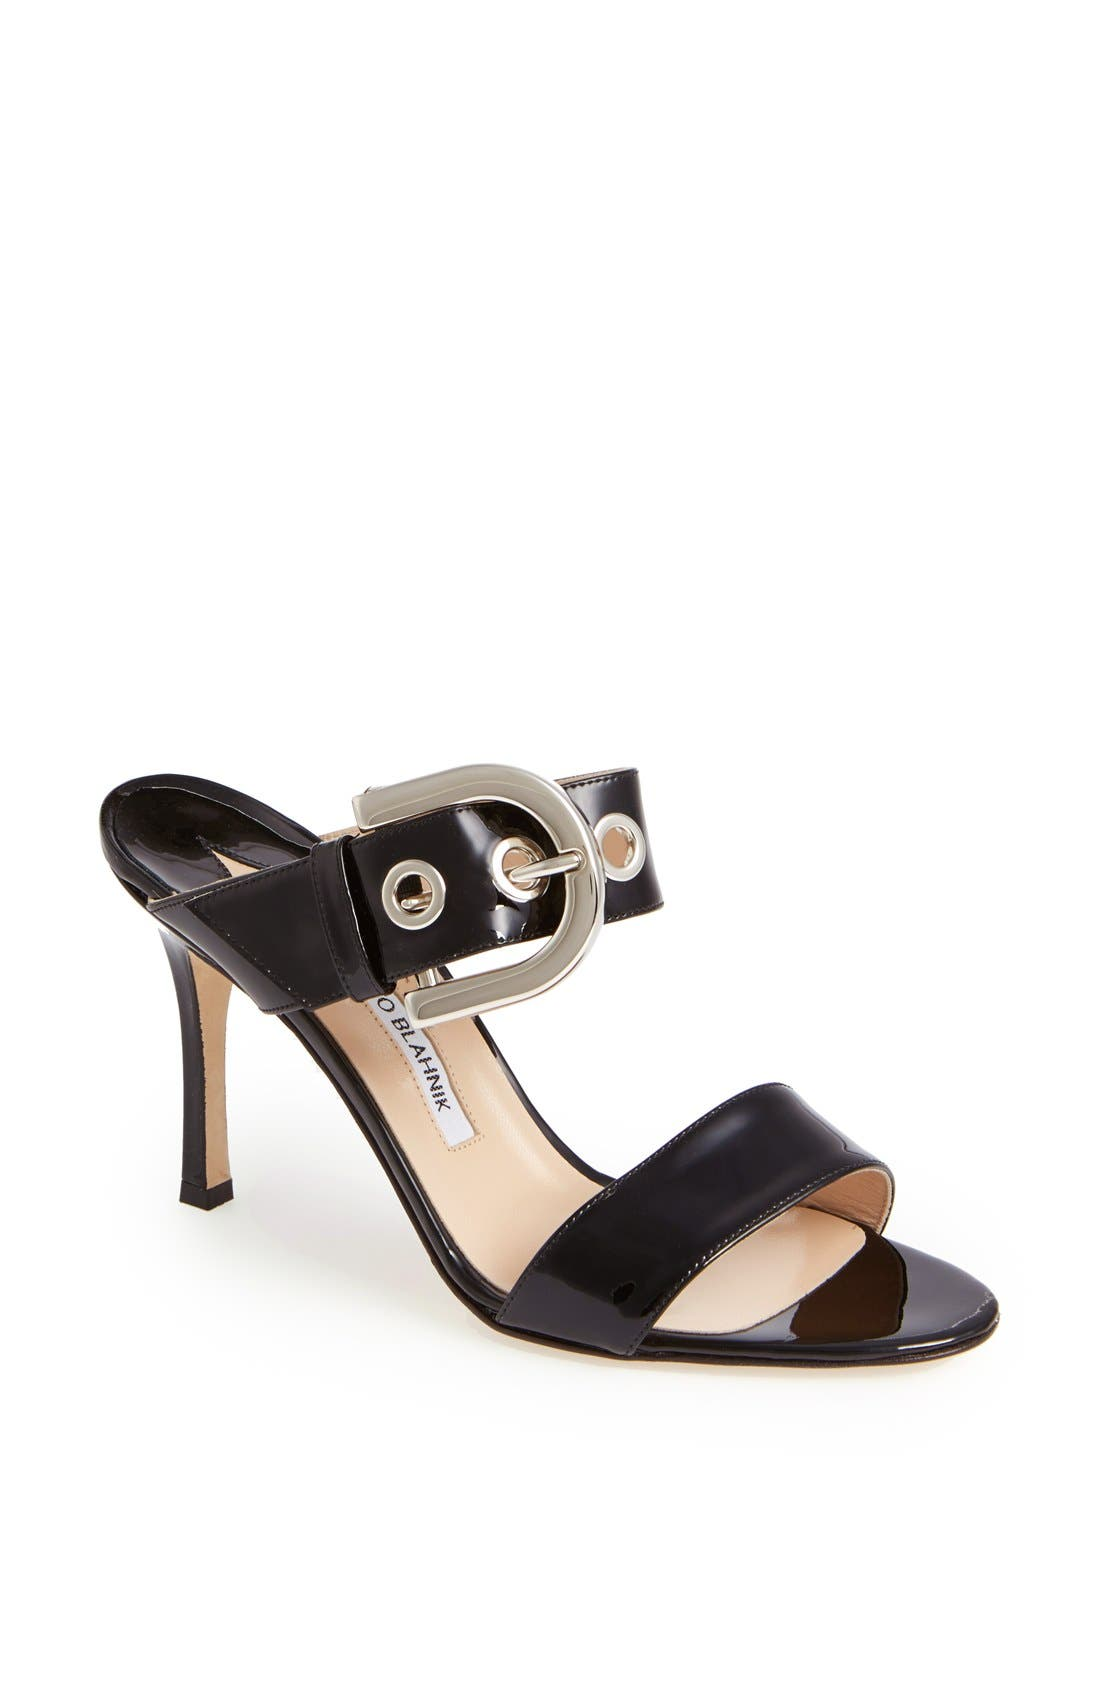 Alternate Image 1 Selected - Manolo Blahnik 'Bila' Slide Sandal